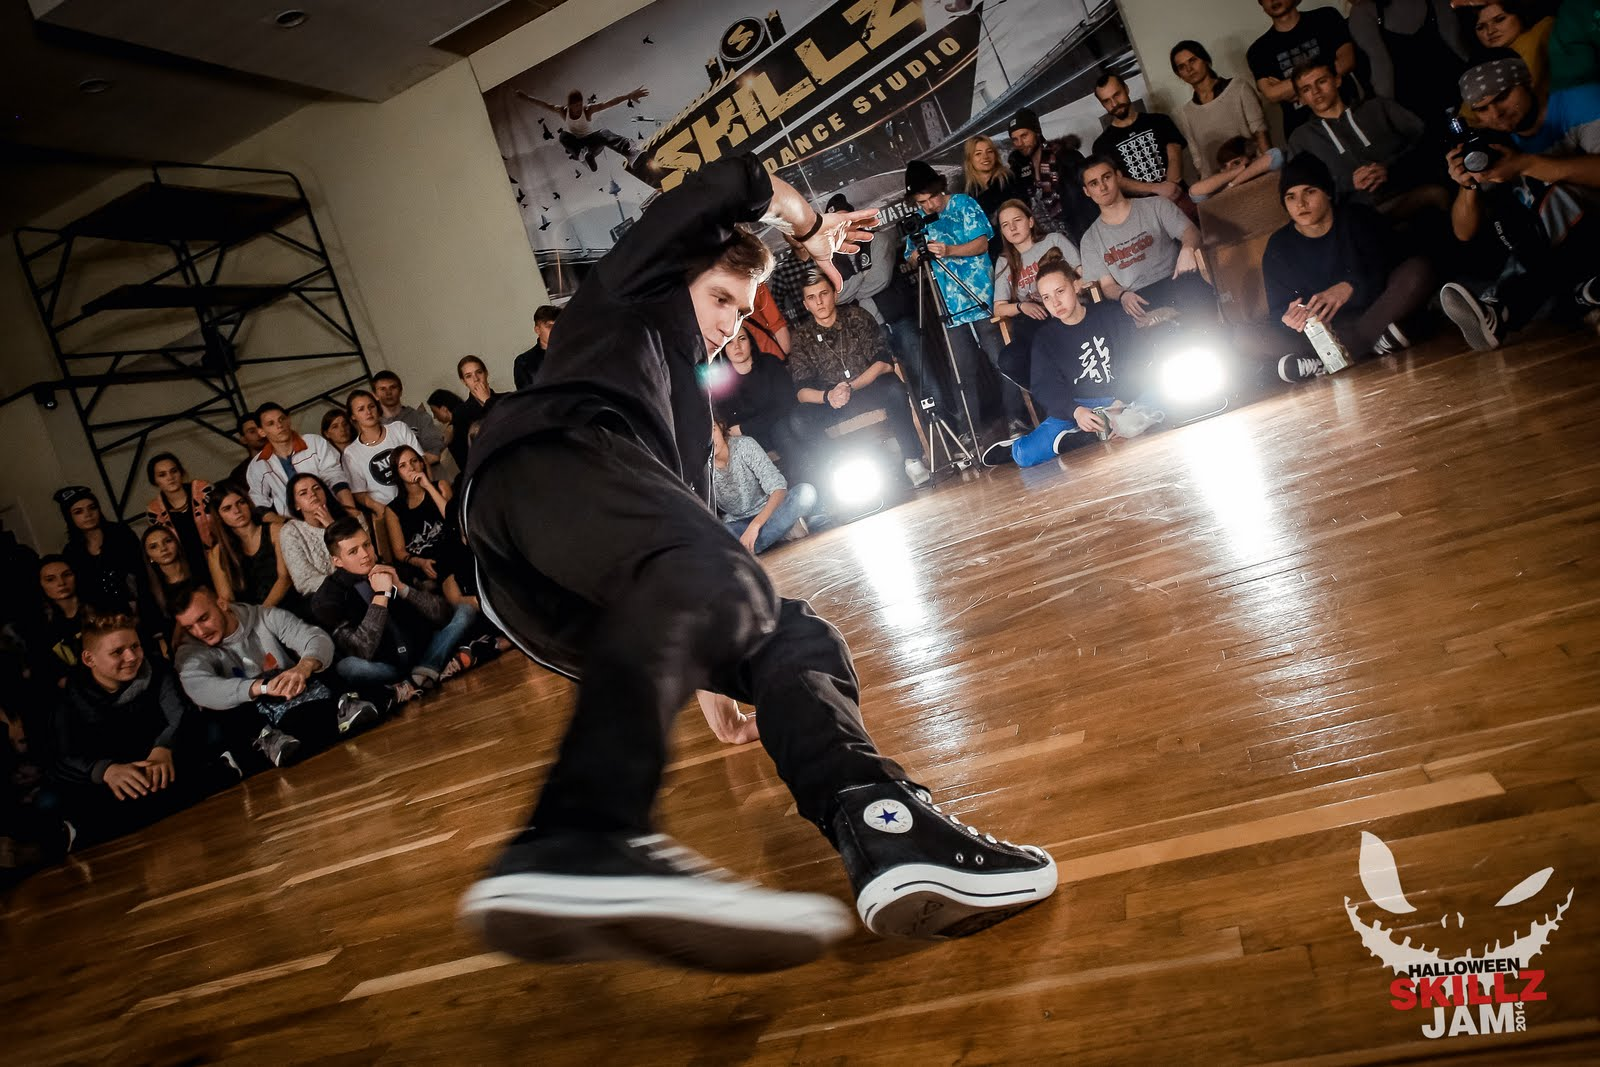 SKILLZ Halloween Jam Battles - a_MG_2434.jpg